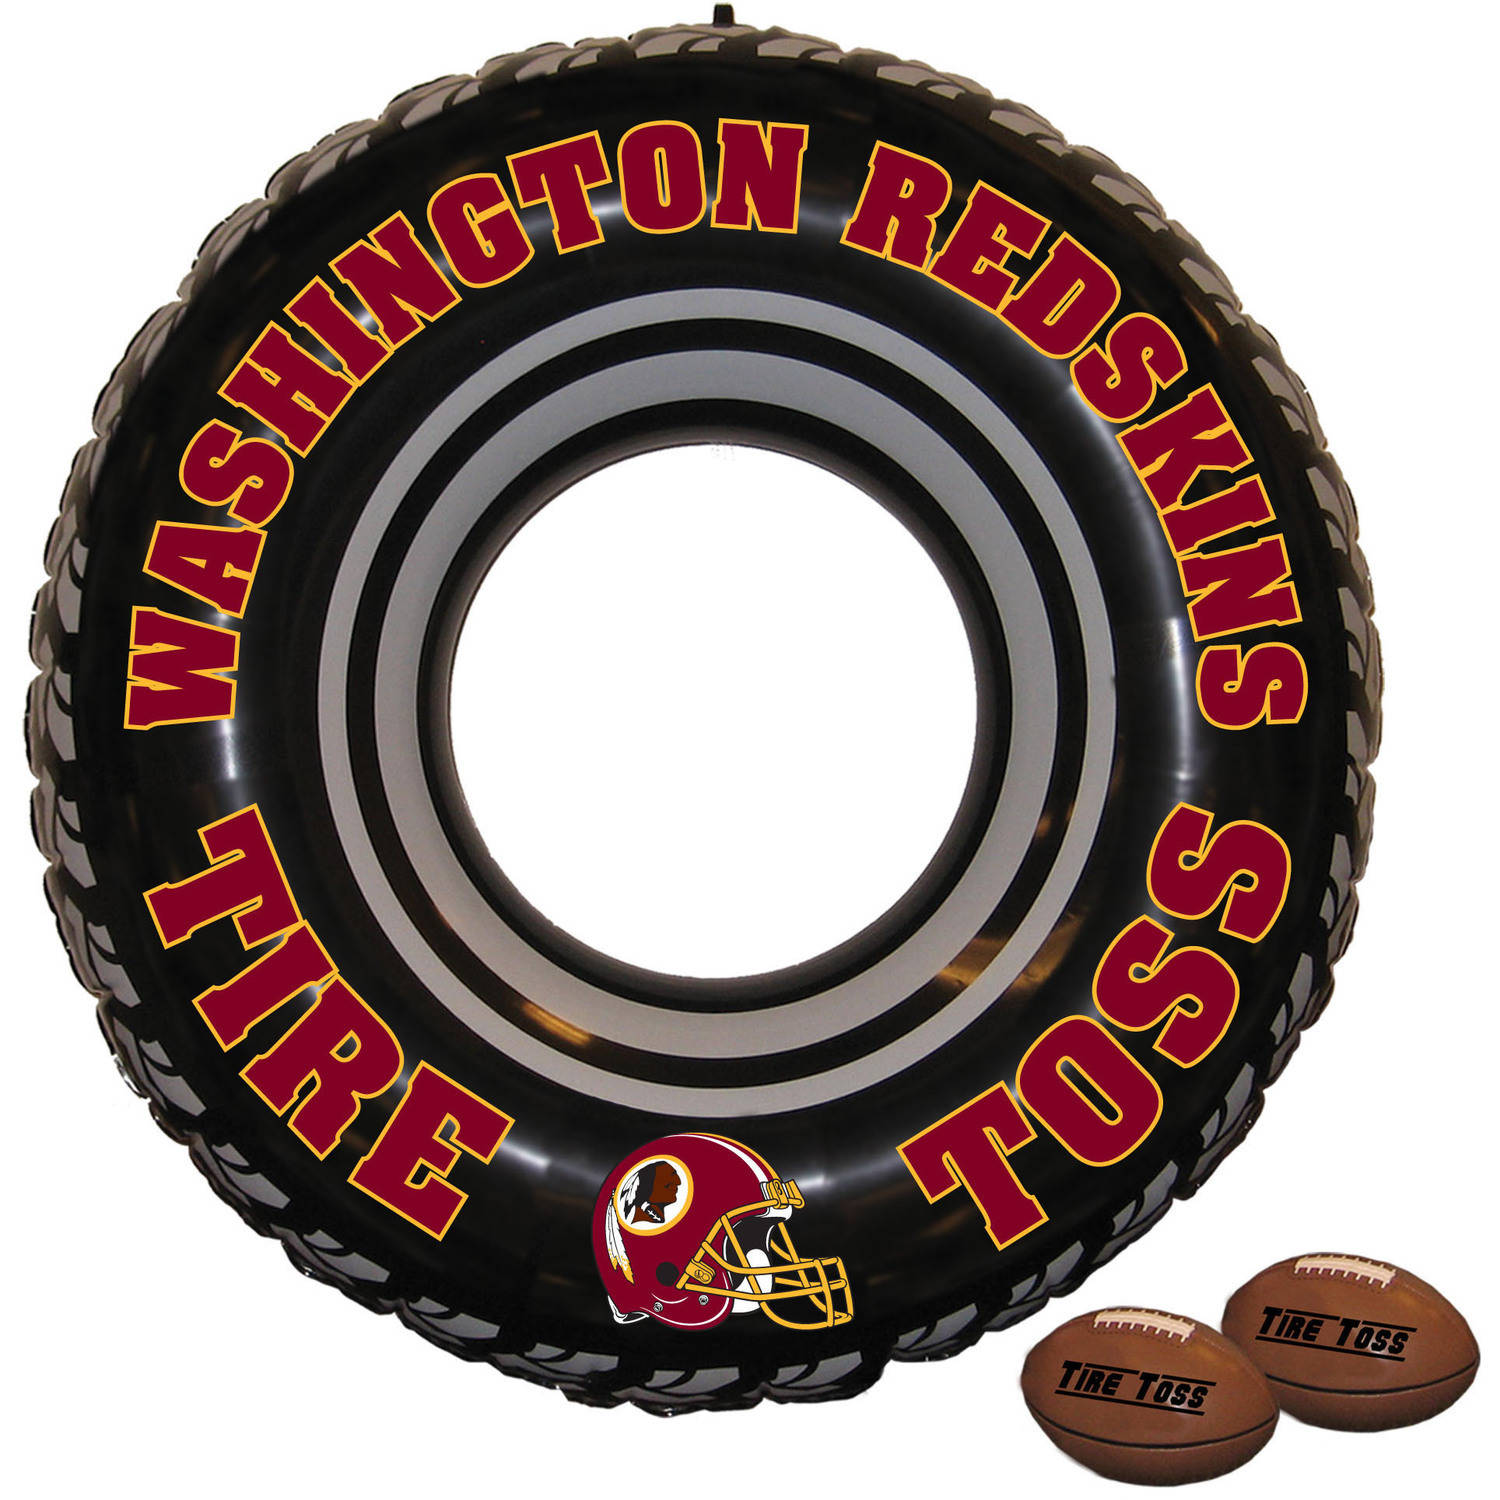 NFL Washington Redskins Tire Toss